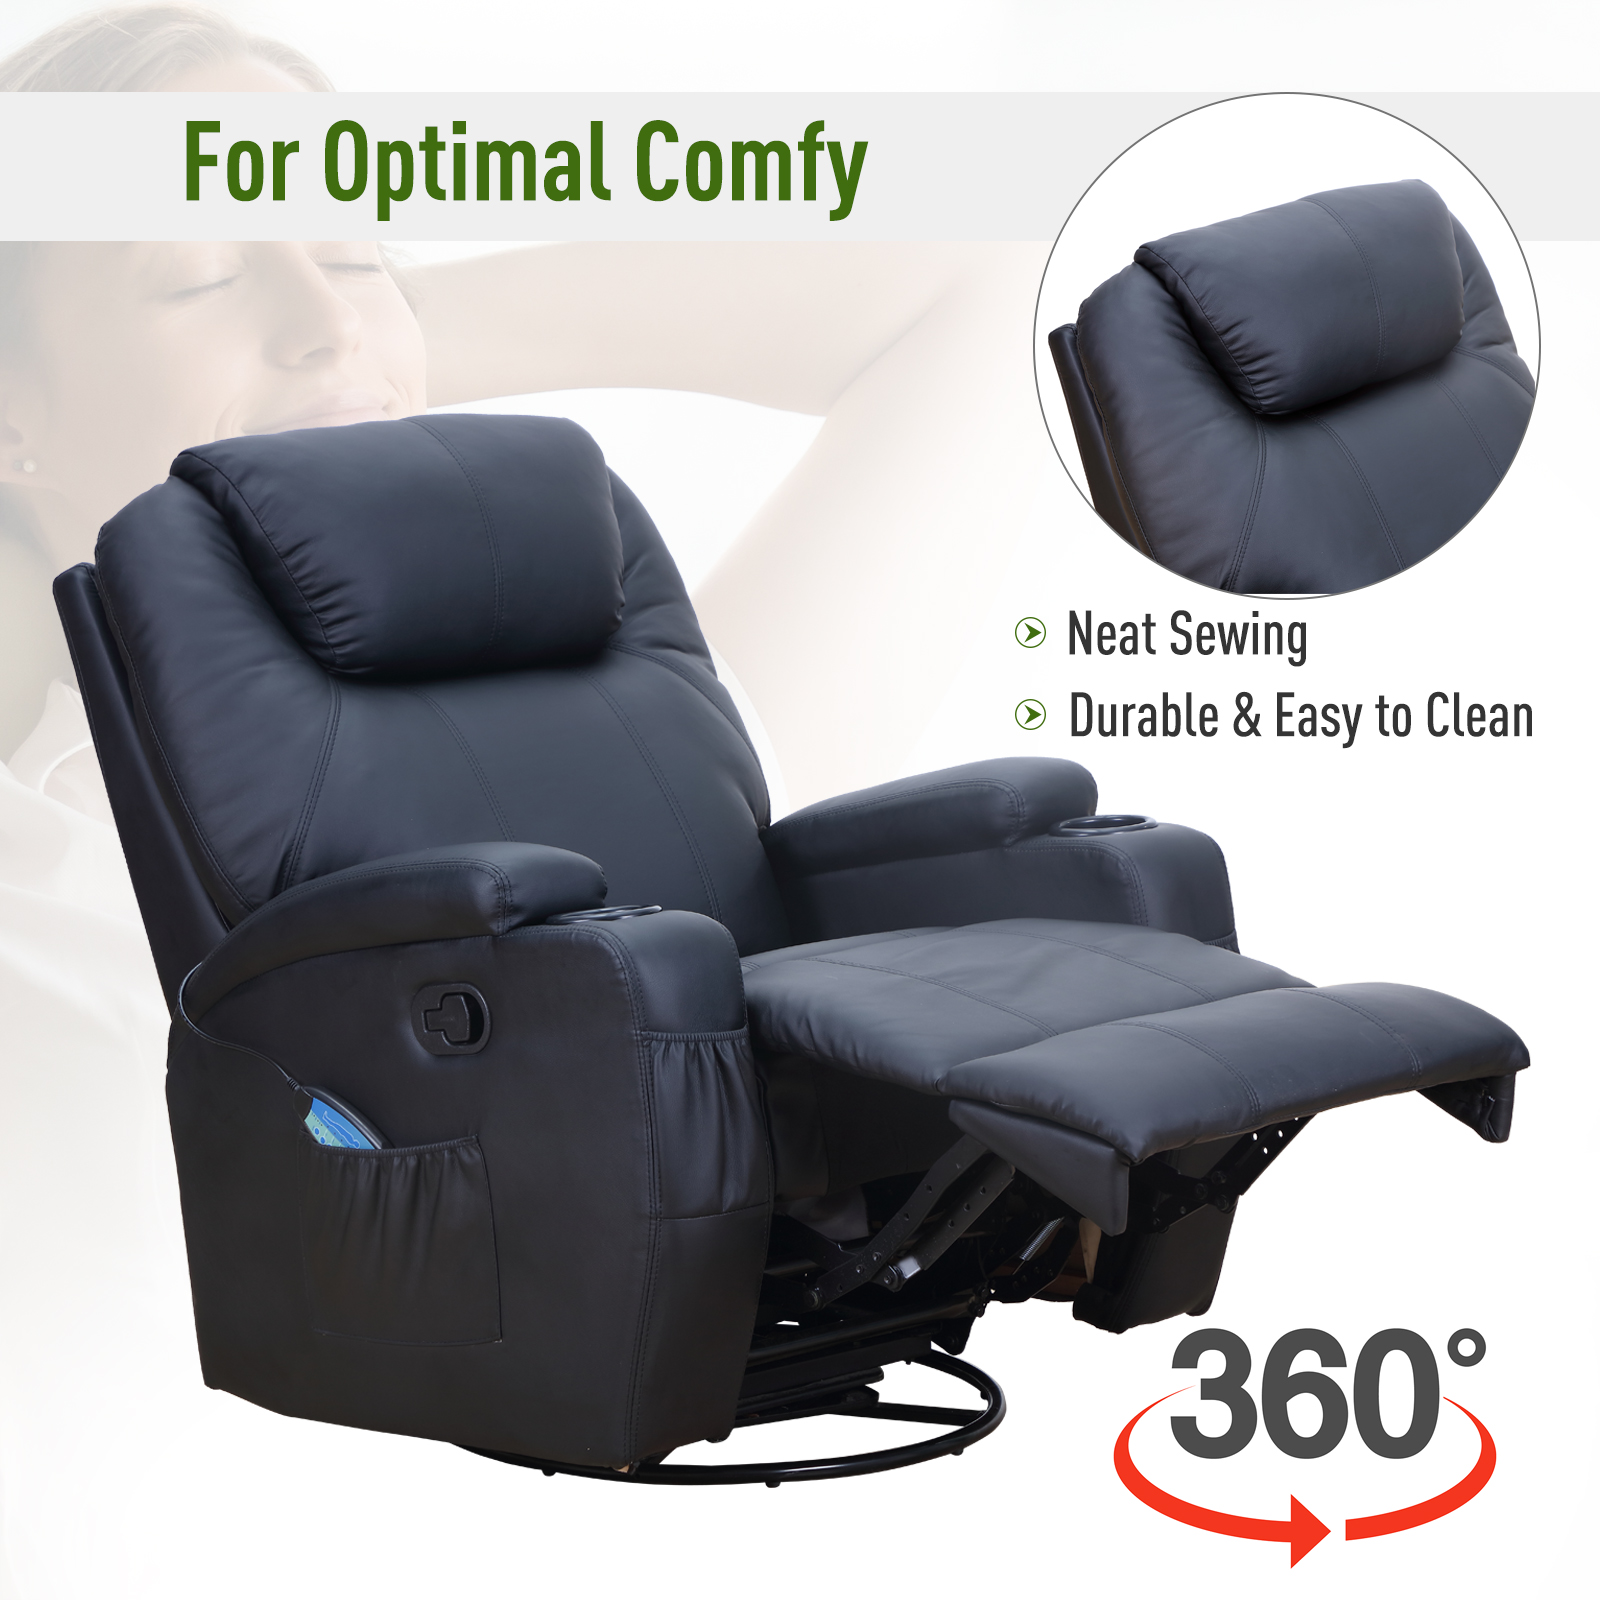 Therapeutic Heated Massage Reclining Sofa Chair Relaxing Home Furniture 3 Colors Ebay